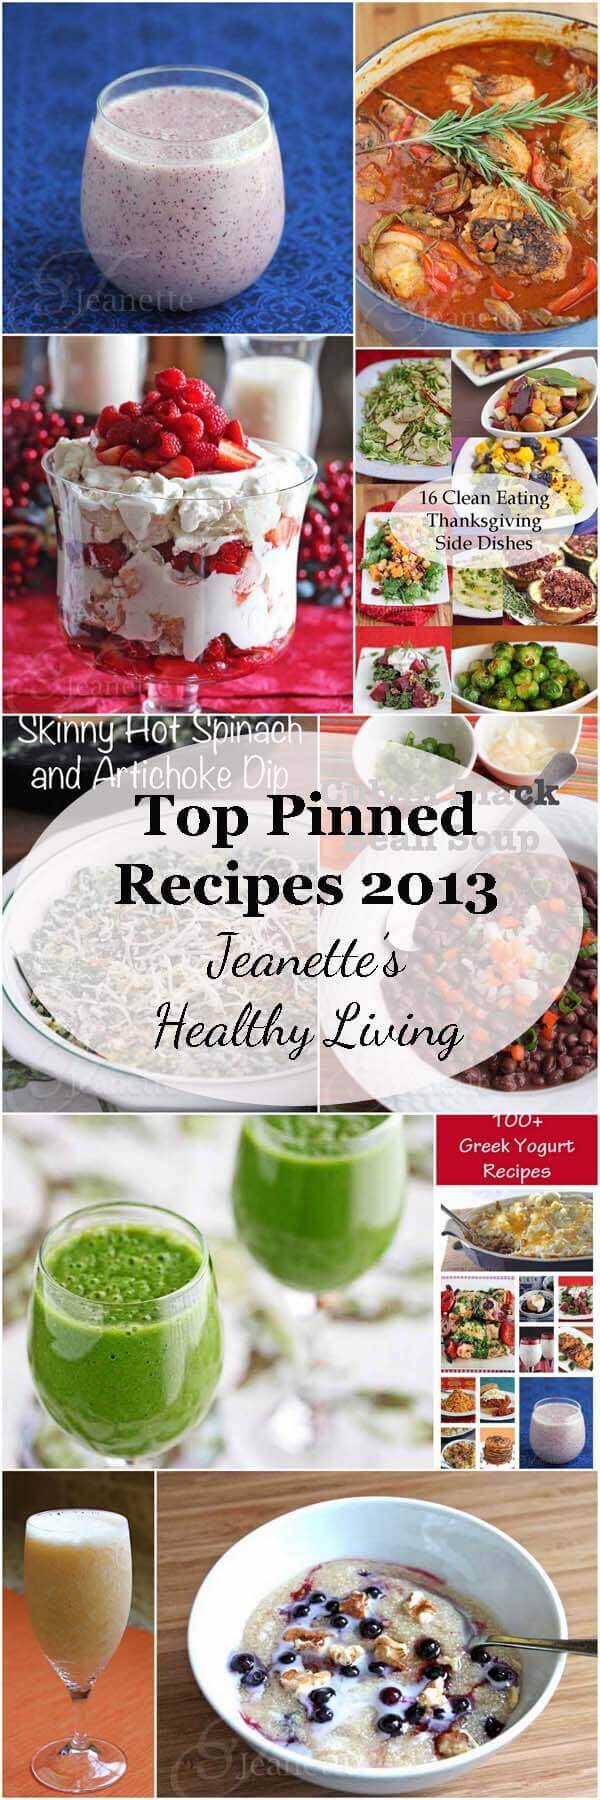 Top Pinned Recipes 2013 Jeanette's Healthy Living